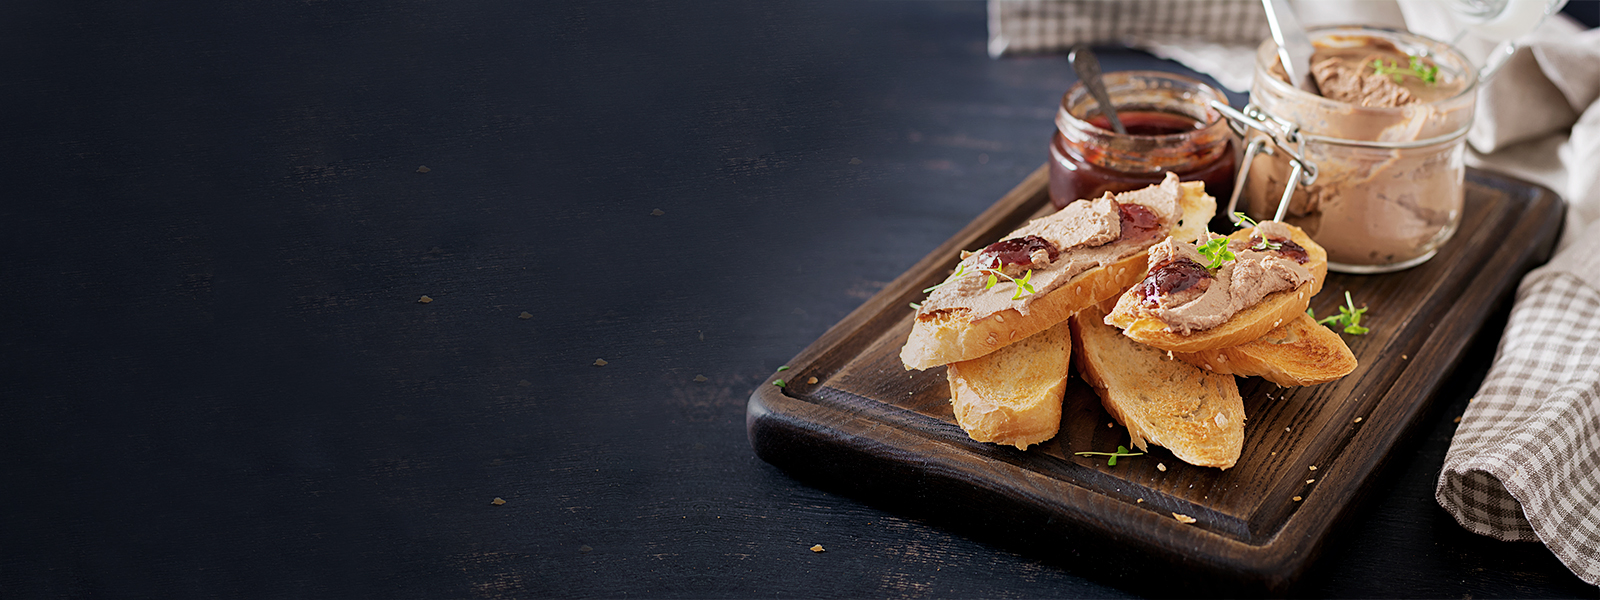 Our Winter Pâté Picks for a Snowy Night In